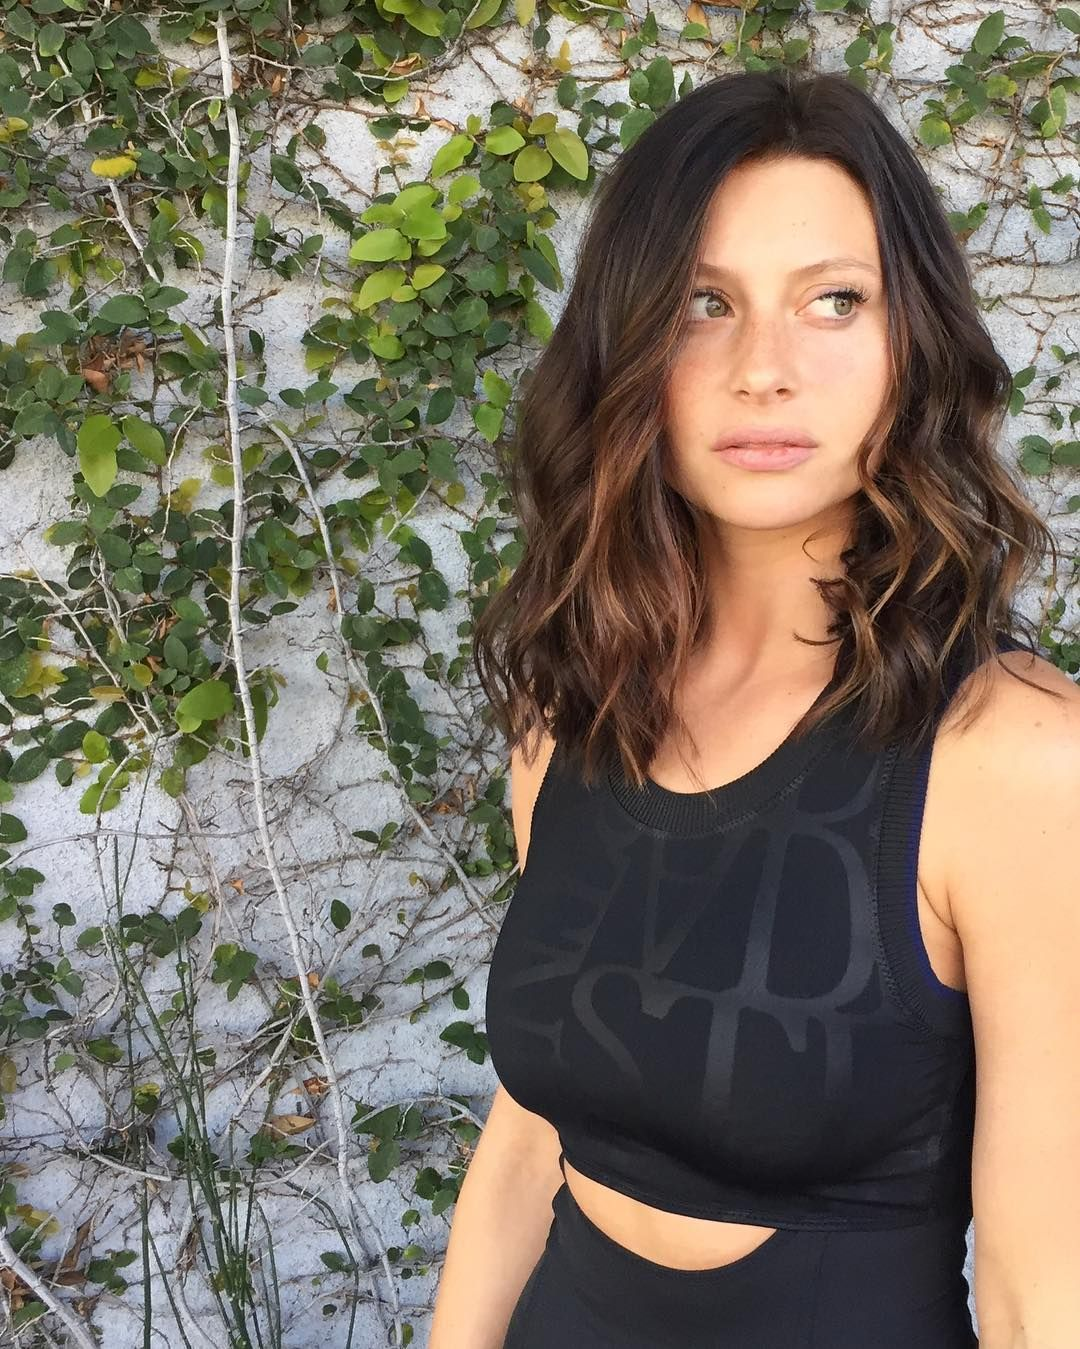 Instagram Alyson Aly Michalka nude (62 foto and video), Ass, Cleavage, Feet, cameltoe 2017